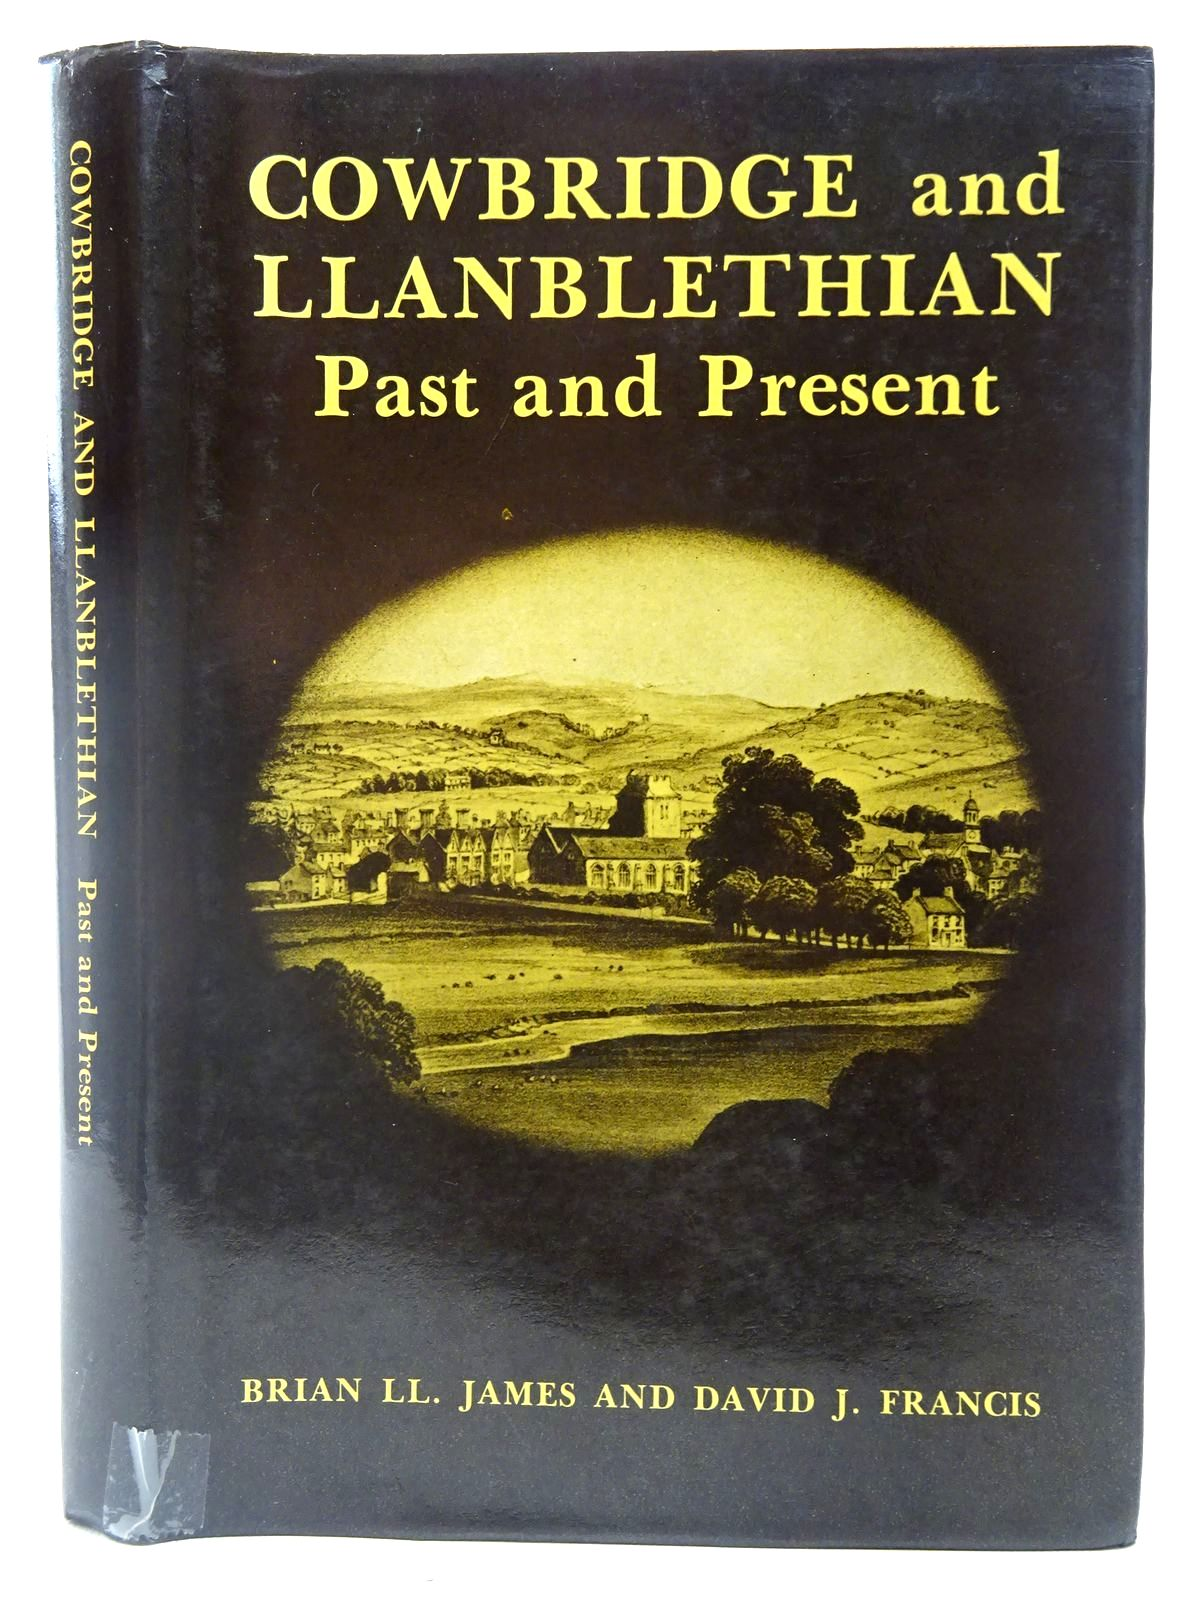 Photo of COWBRIDGE AND LLANBLETHIAN PAST AND PRESENT- Stock Number: 2126958